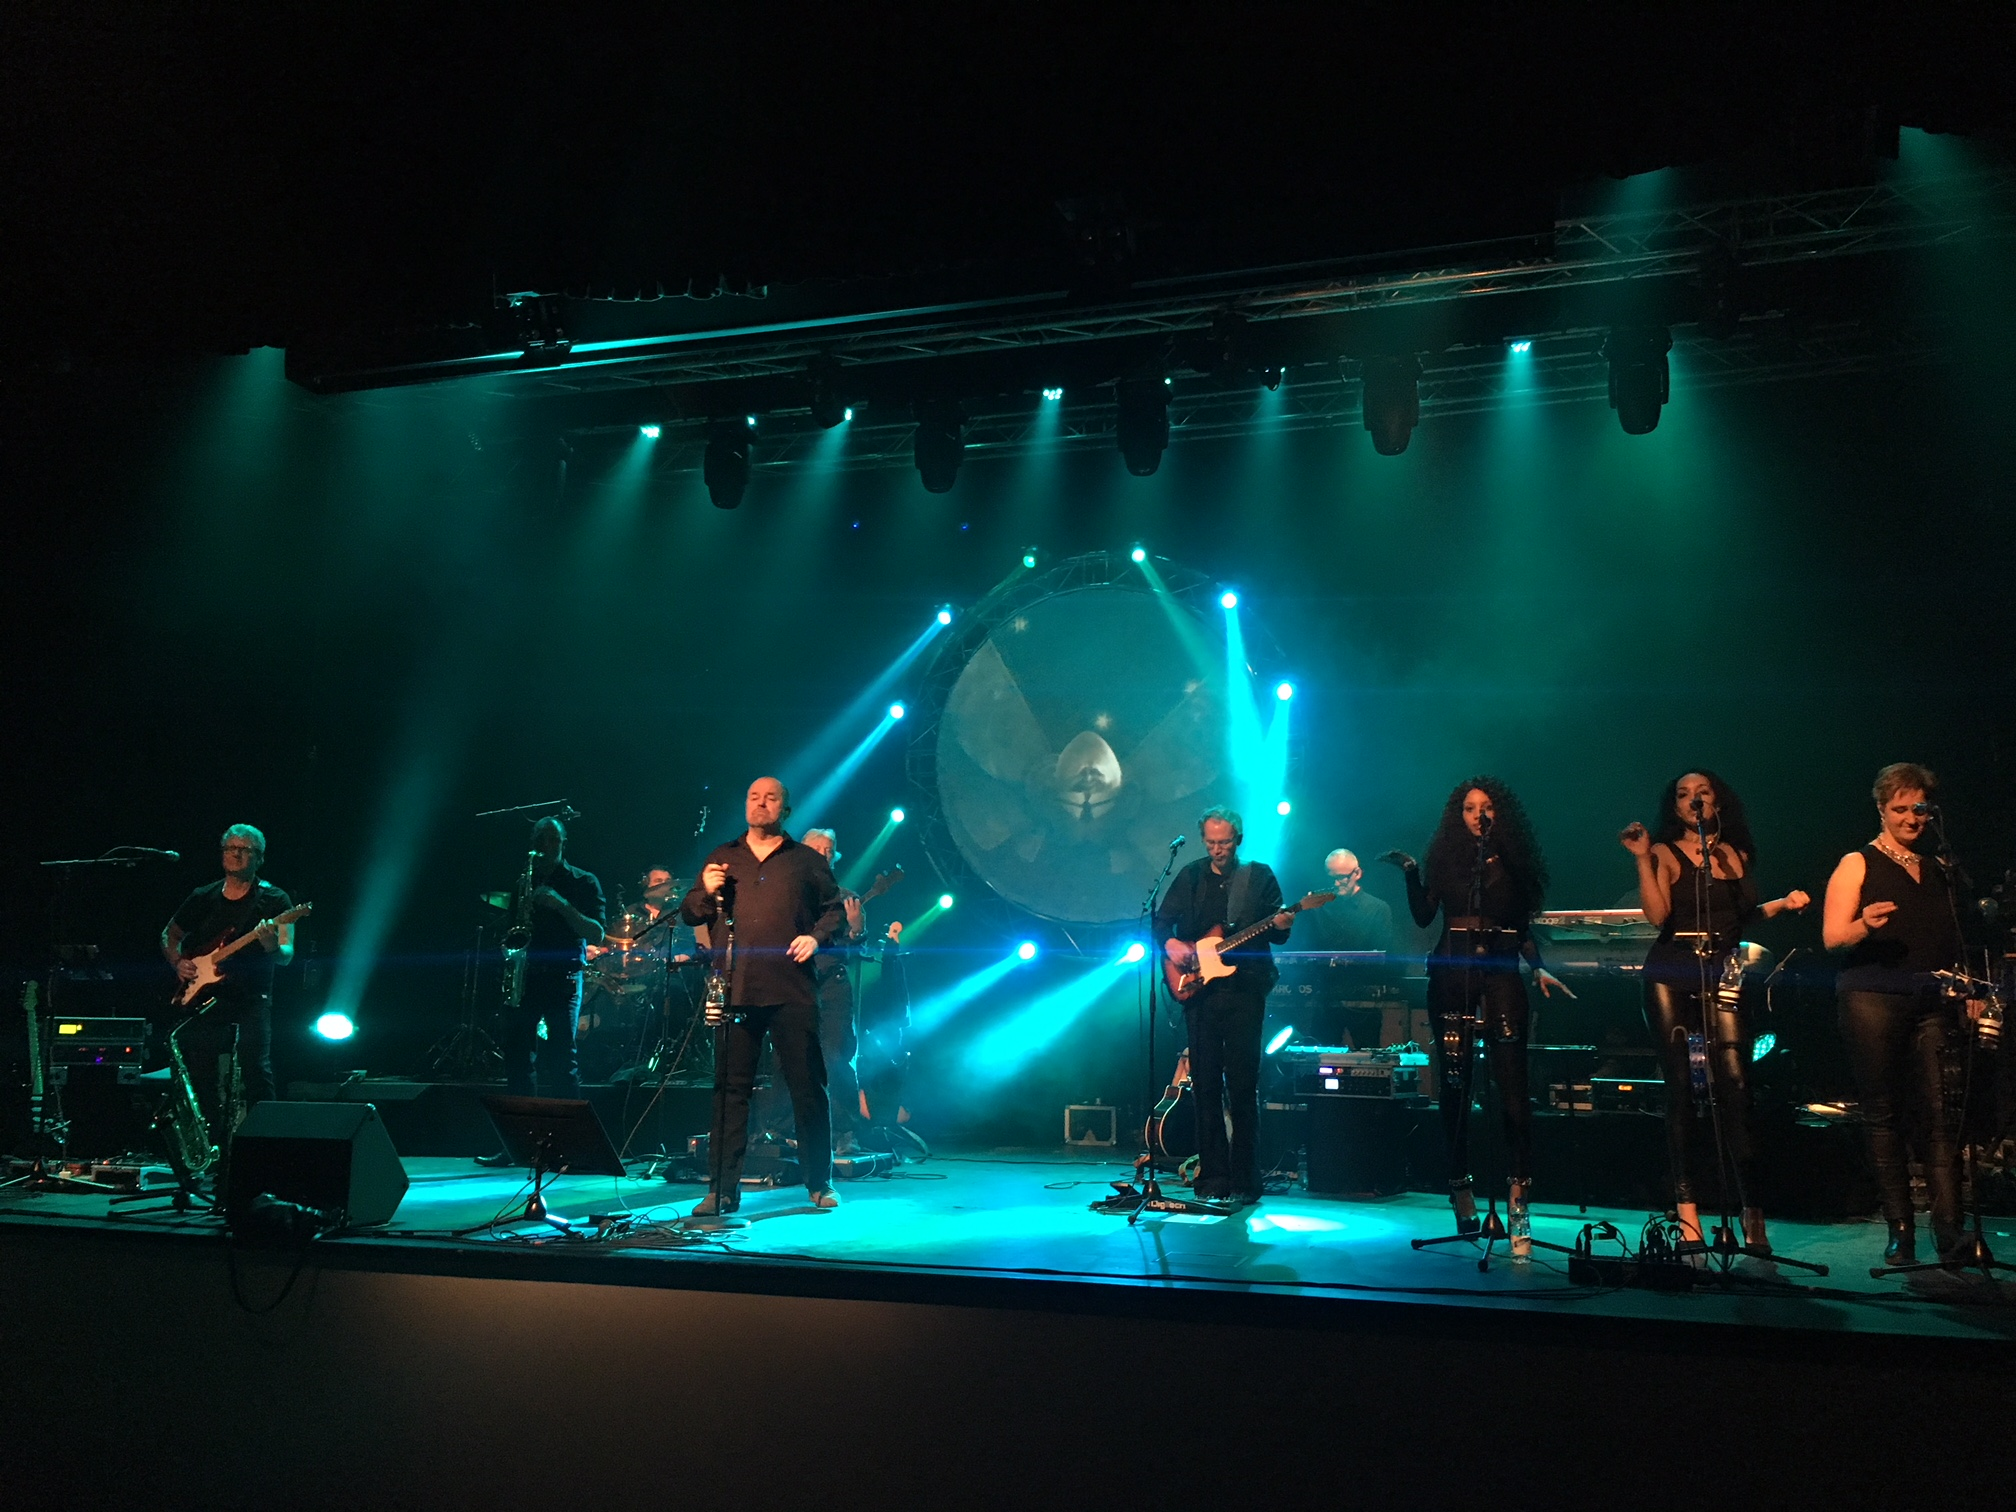 Concertreview: Absolutely Floyd